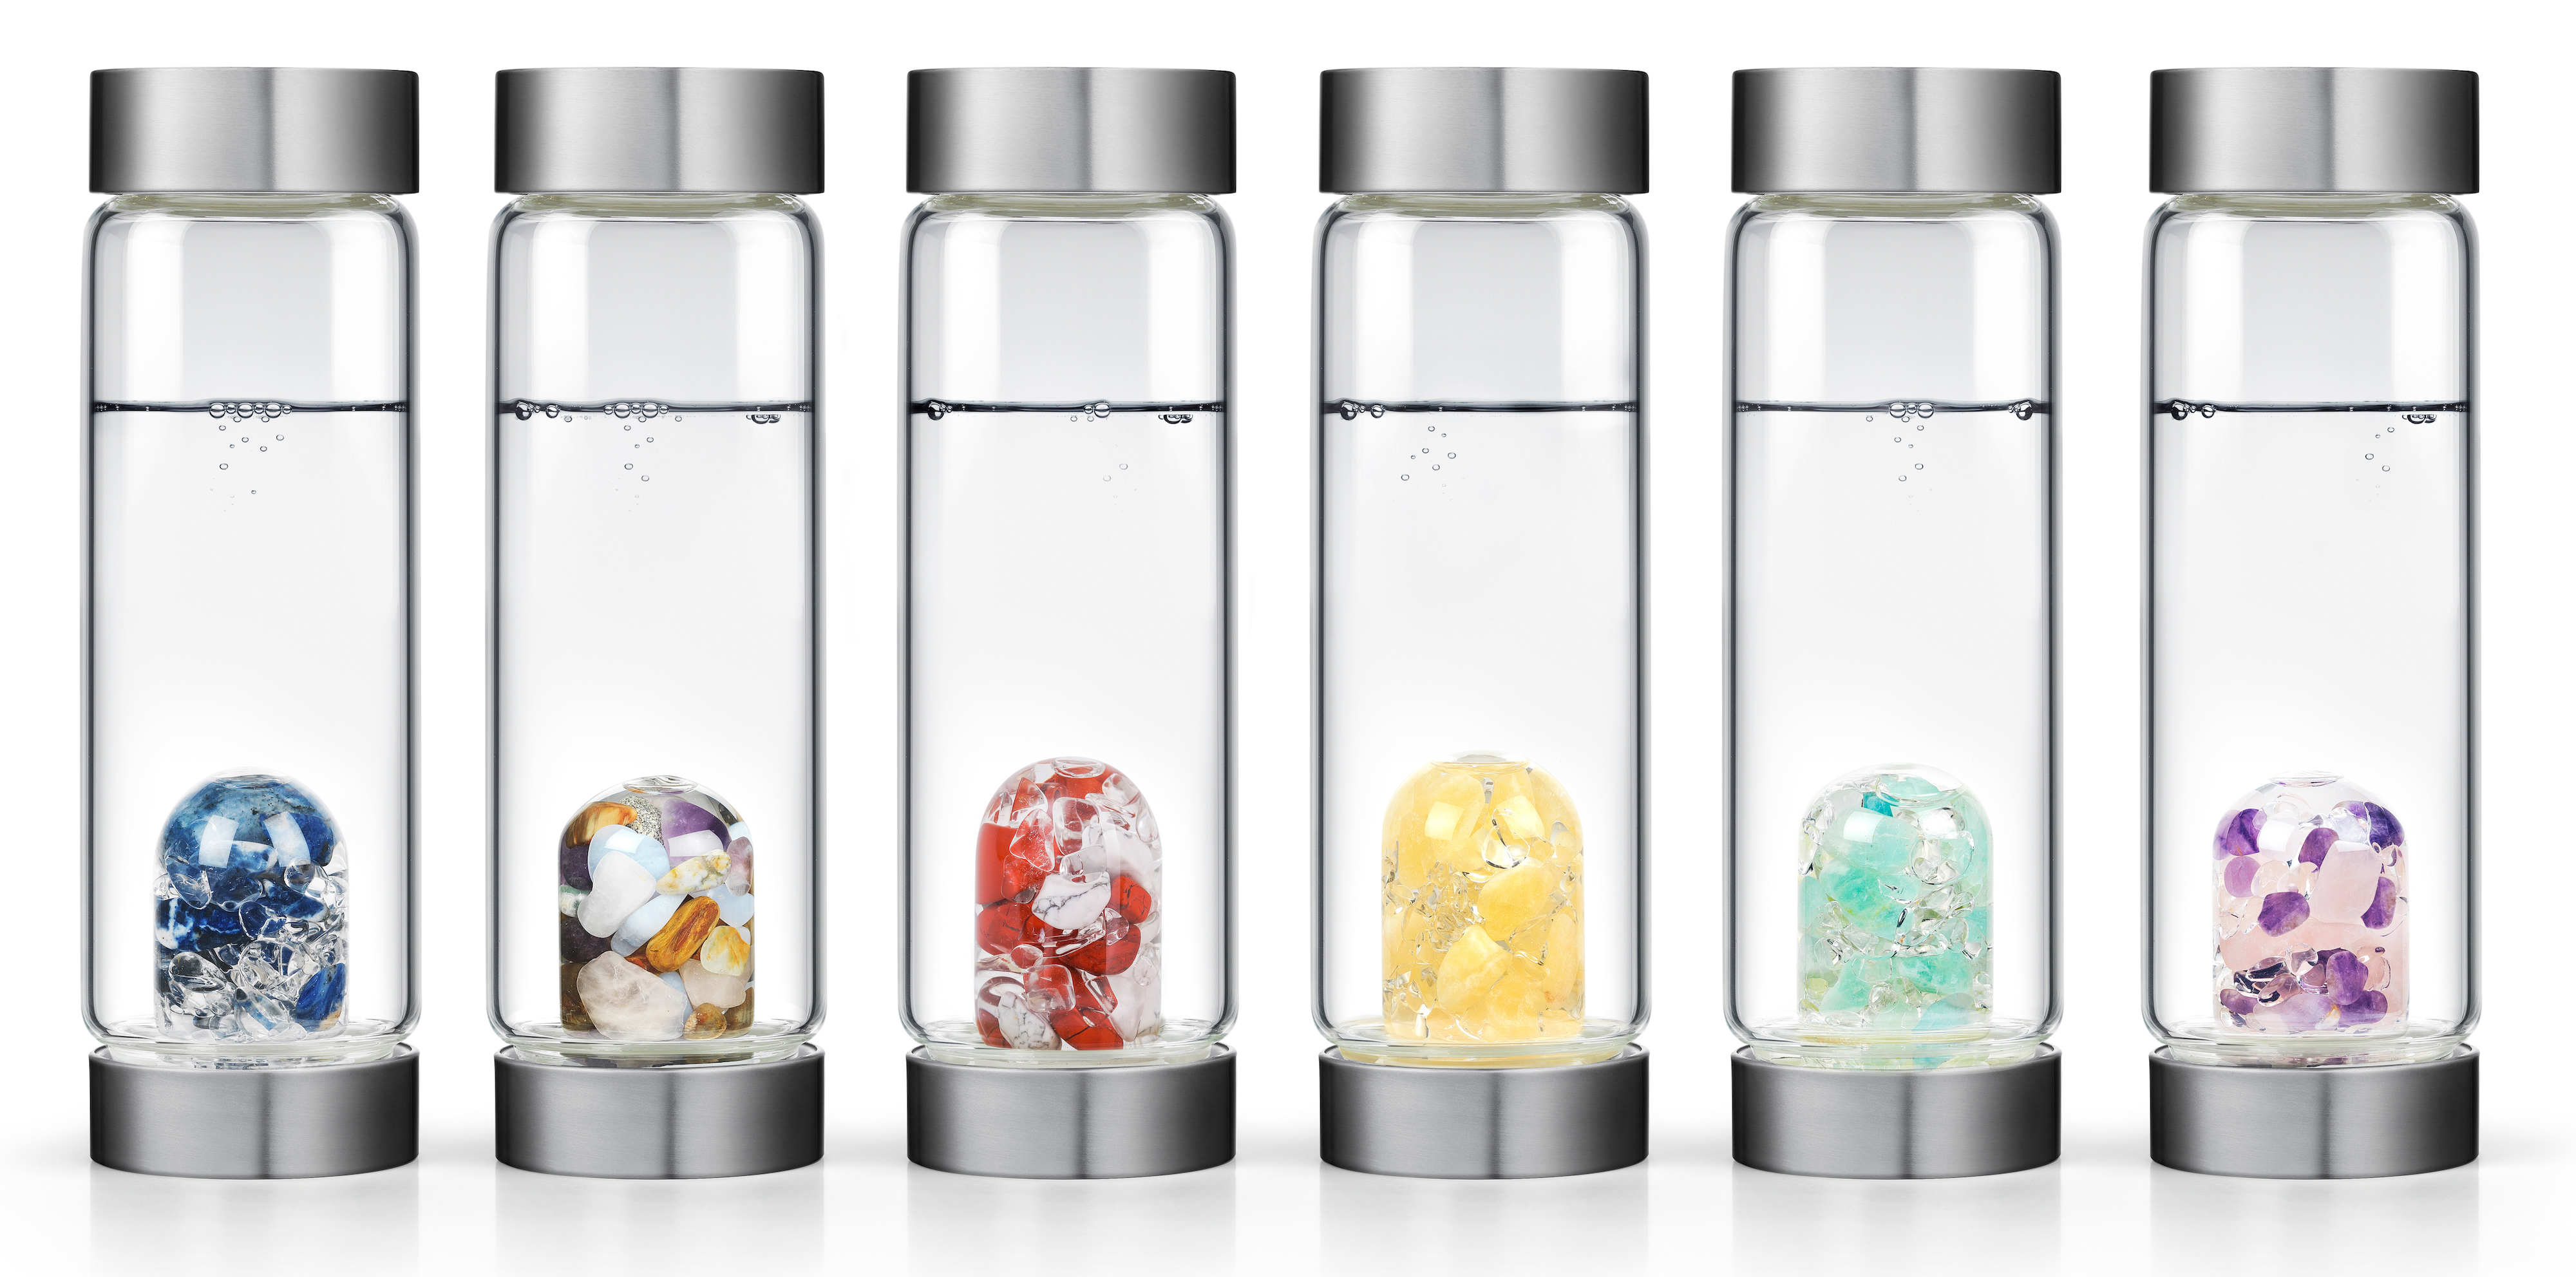 VitaJuwel Gem-Water bottles | JCK On Your Market